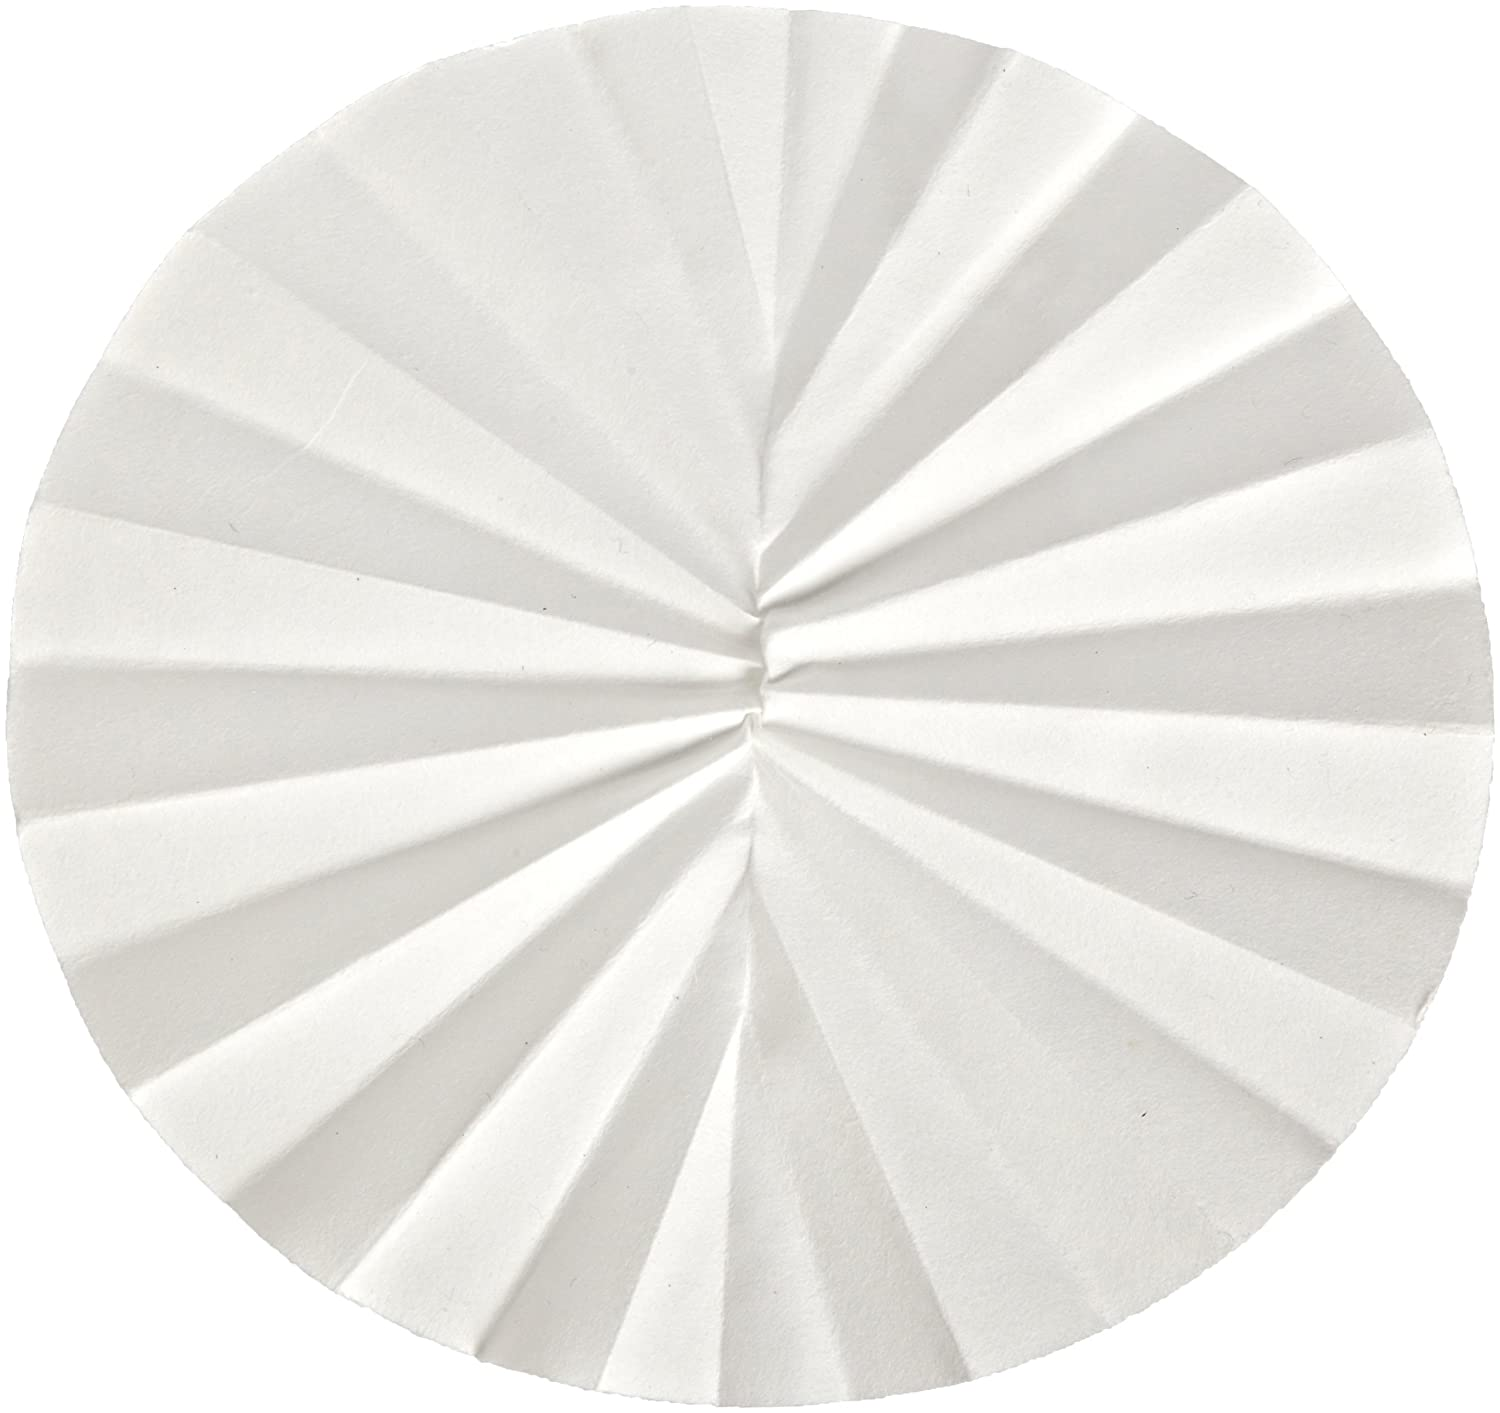 Whatman 10312244 Quantitative Folded Filter Paper, 8-10 Micron, Grade 598-1/2, 125mm Diameter (Pack of 50) GE Healthcare Life Sciences WHA-10312244